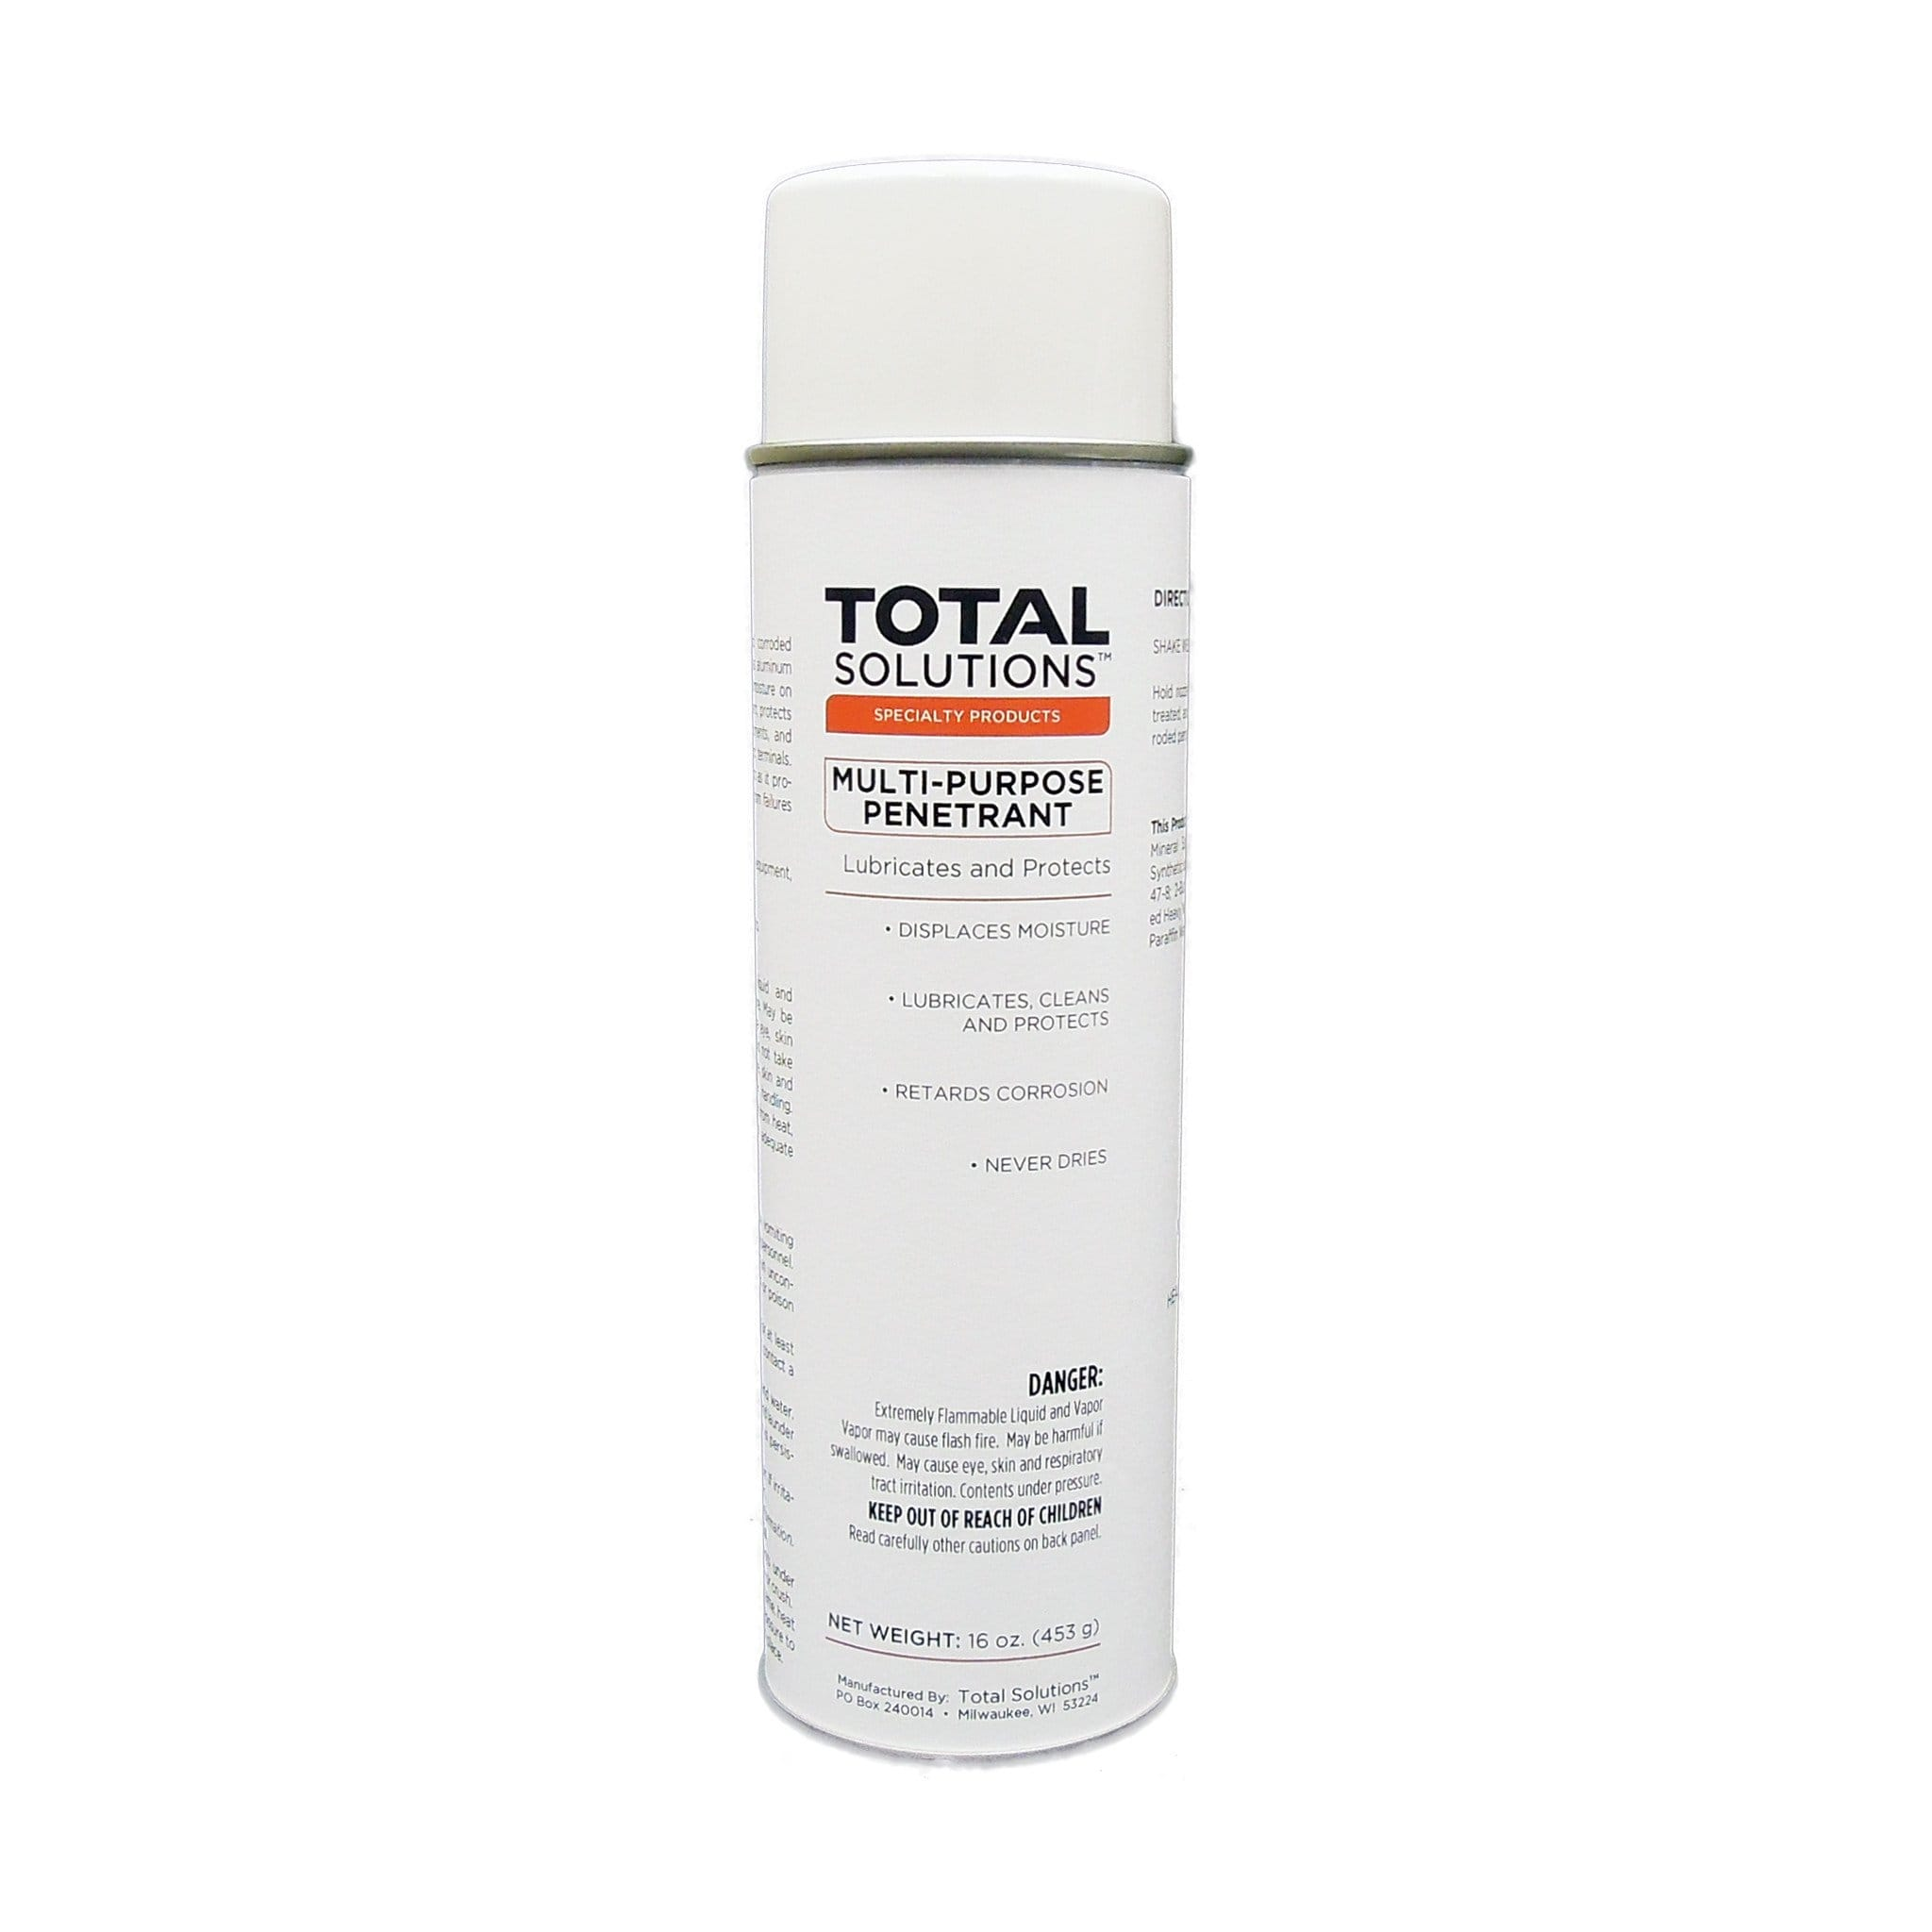 Total Solutions Multi-Purpose Penetrant